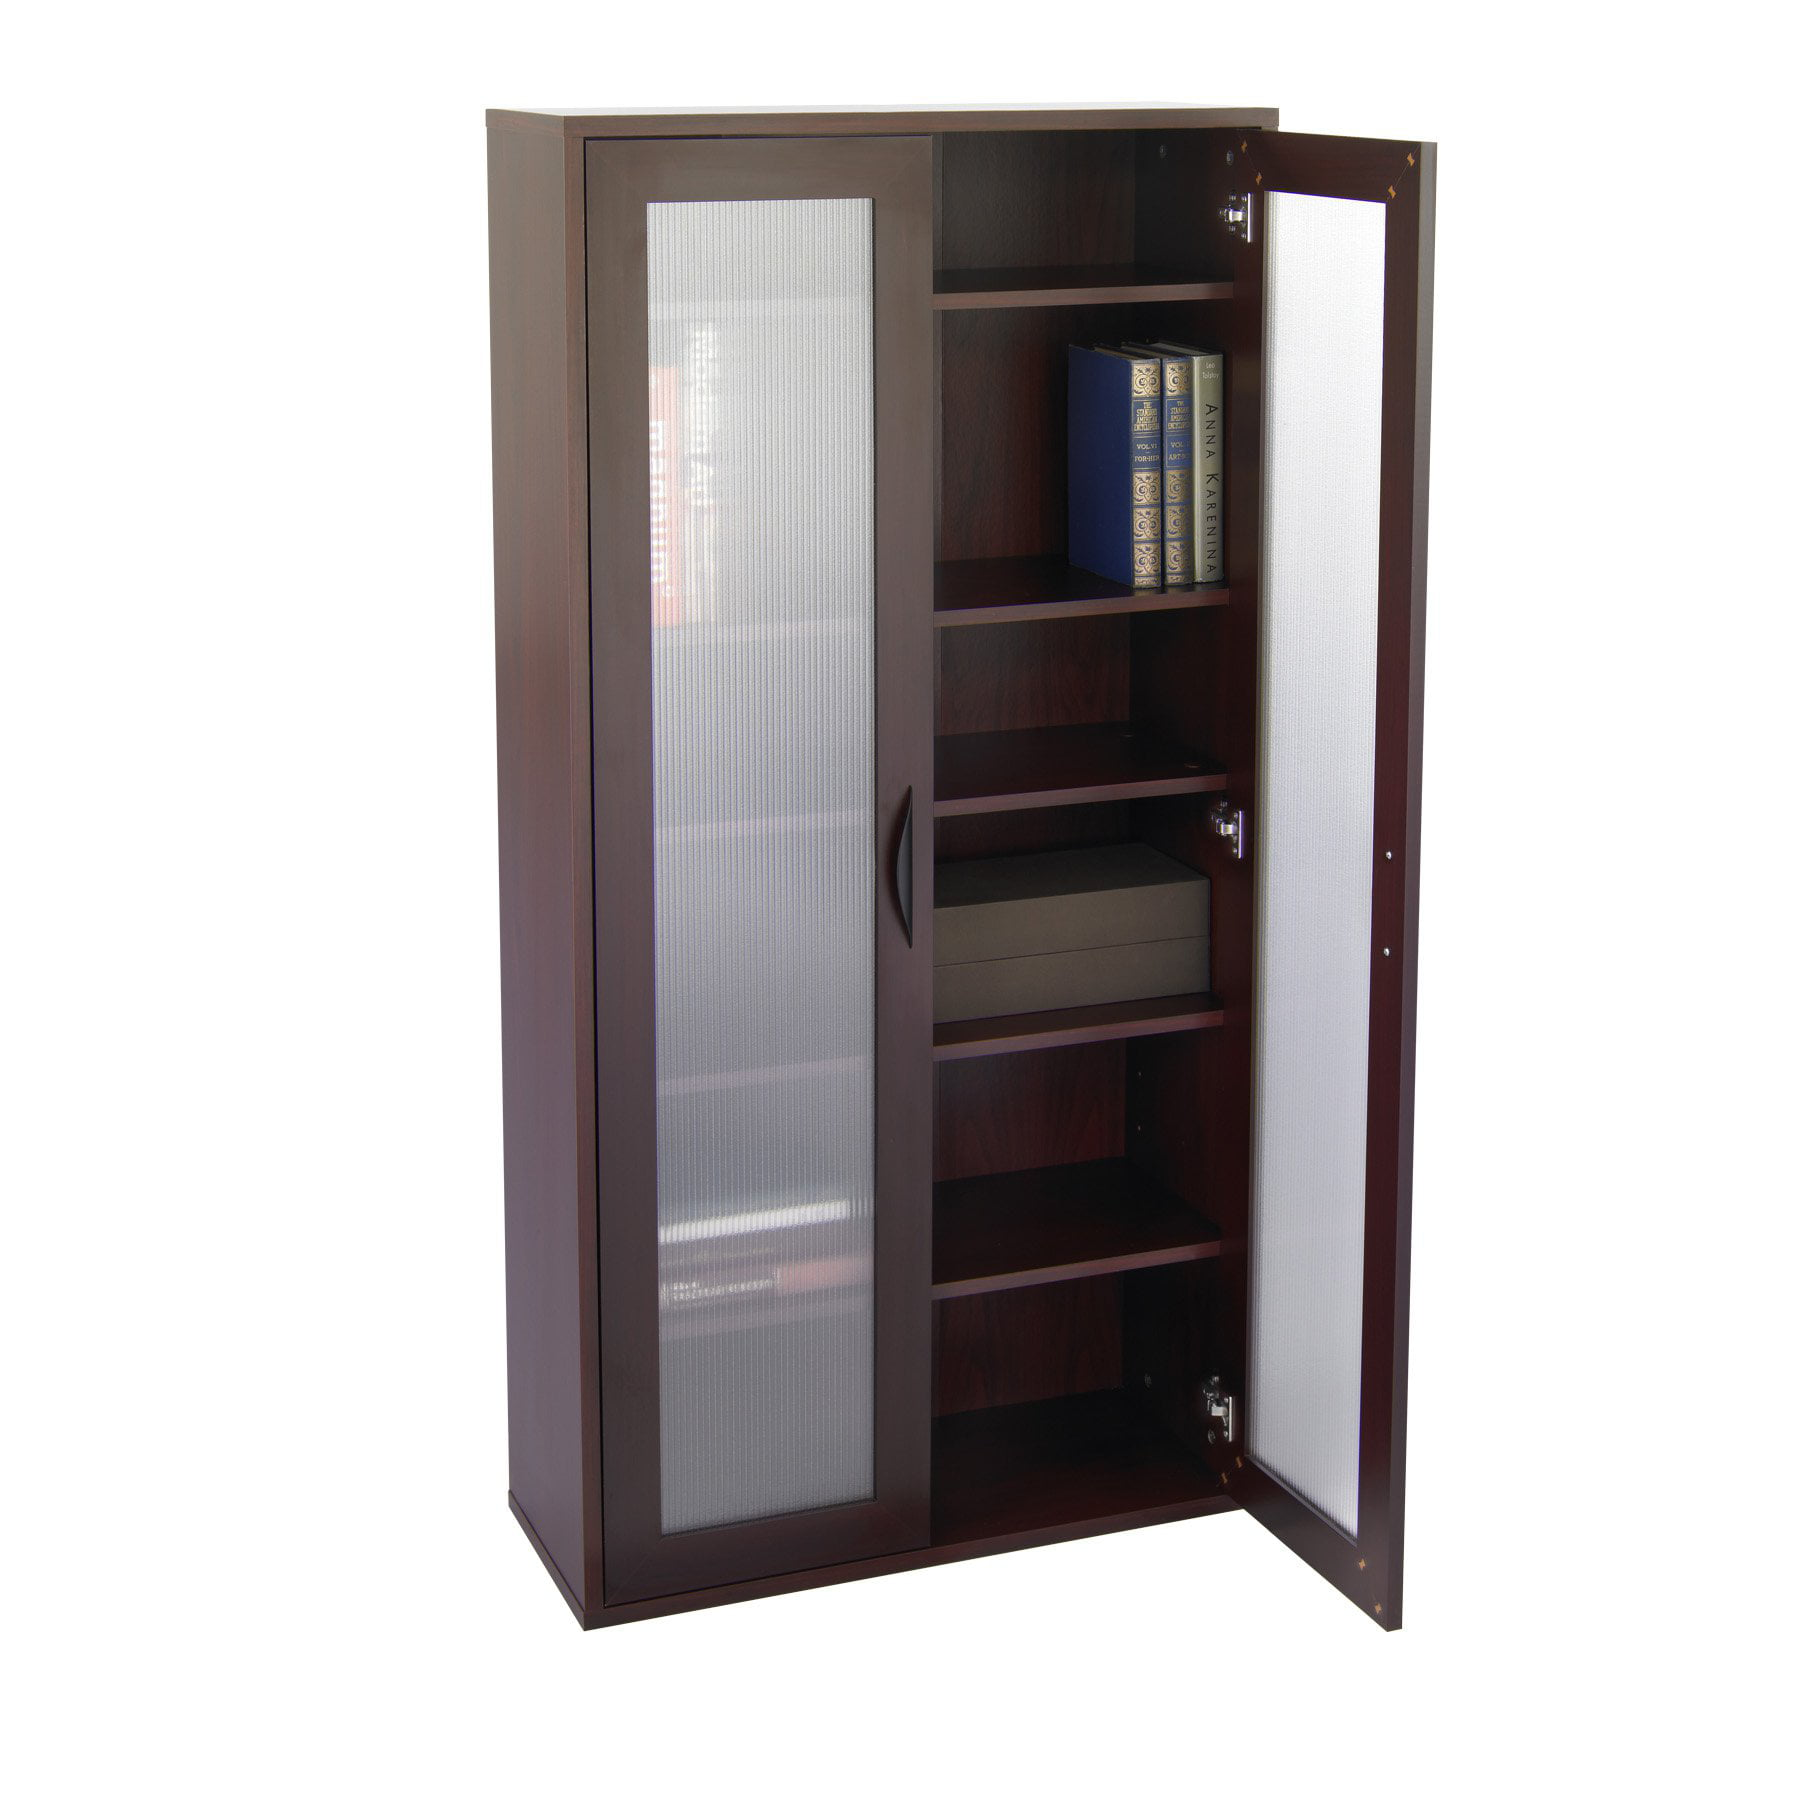 Ordinaire Storage Bookcase With Glass Doors Tall   Mahogany   Walmart.com